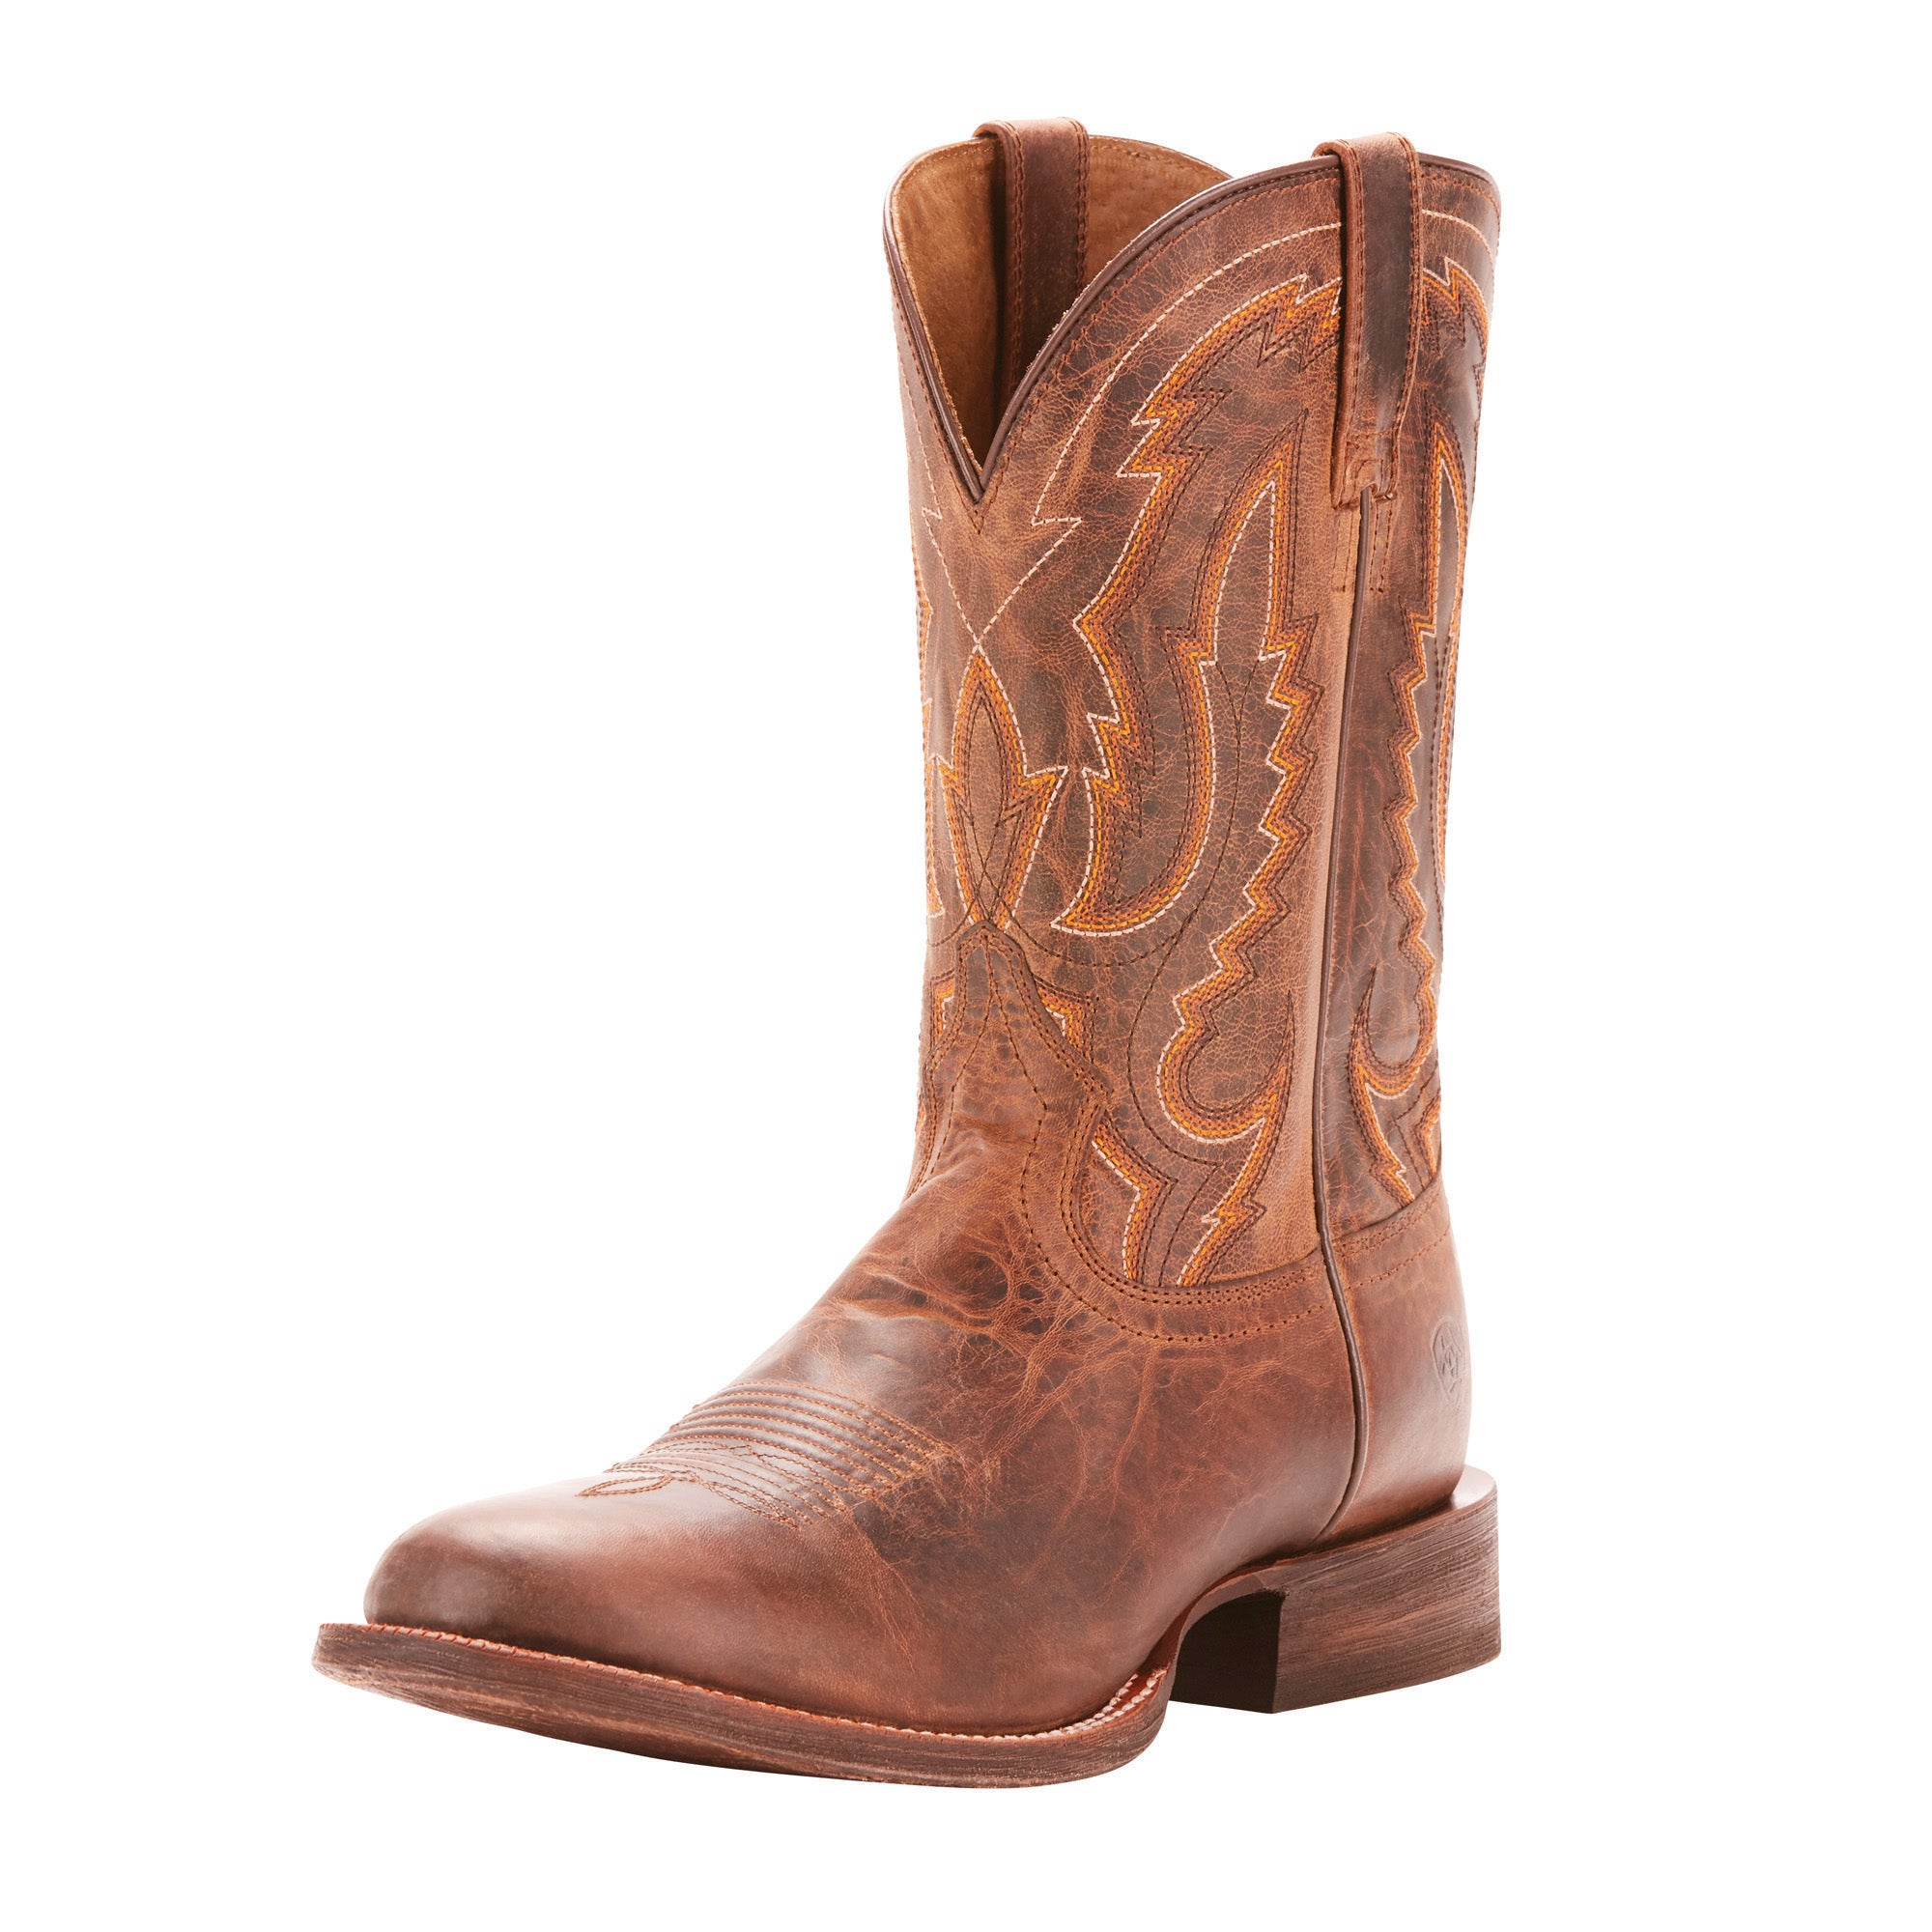 Ariat Circuit Compettitor Men's Square Toe Boot